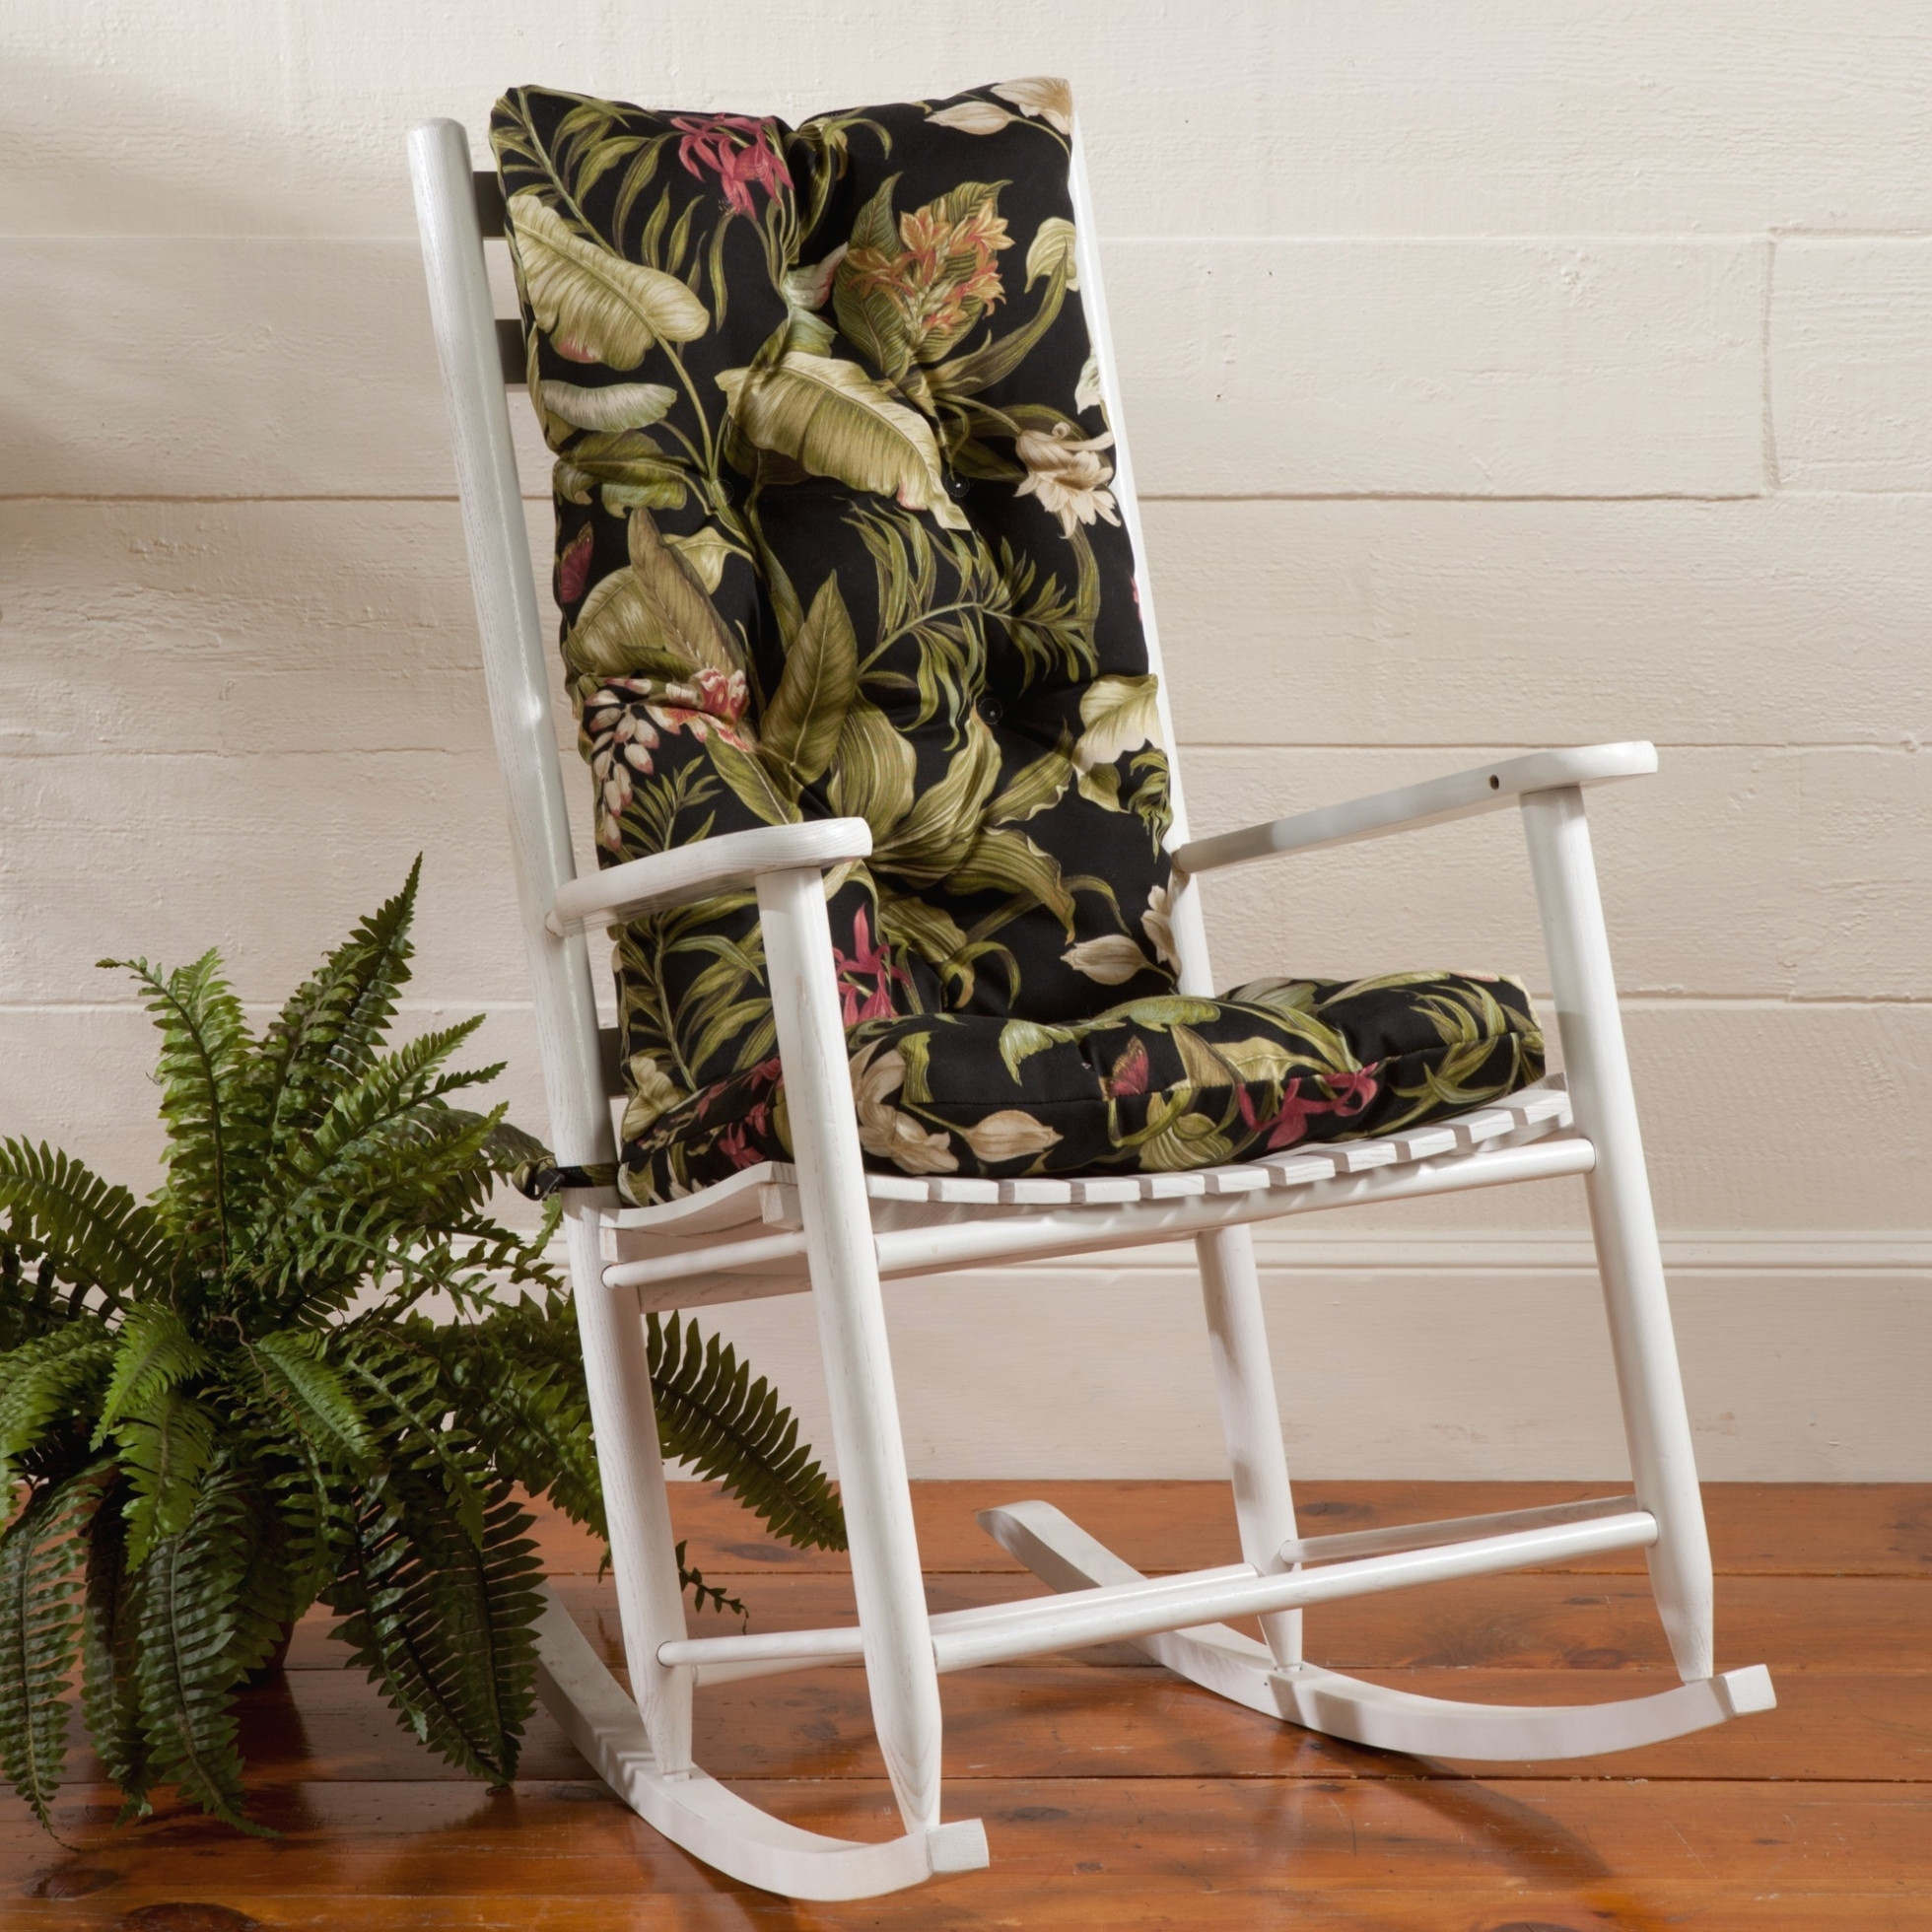 Preferred Furniture: White Wooden Indoor Rocking Chairs With Green Leaves Inside Rocking Chair Cushions For Outdoor (View 4 of 15)